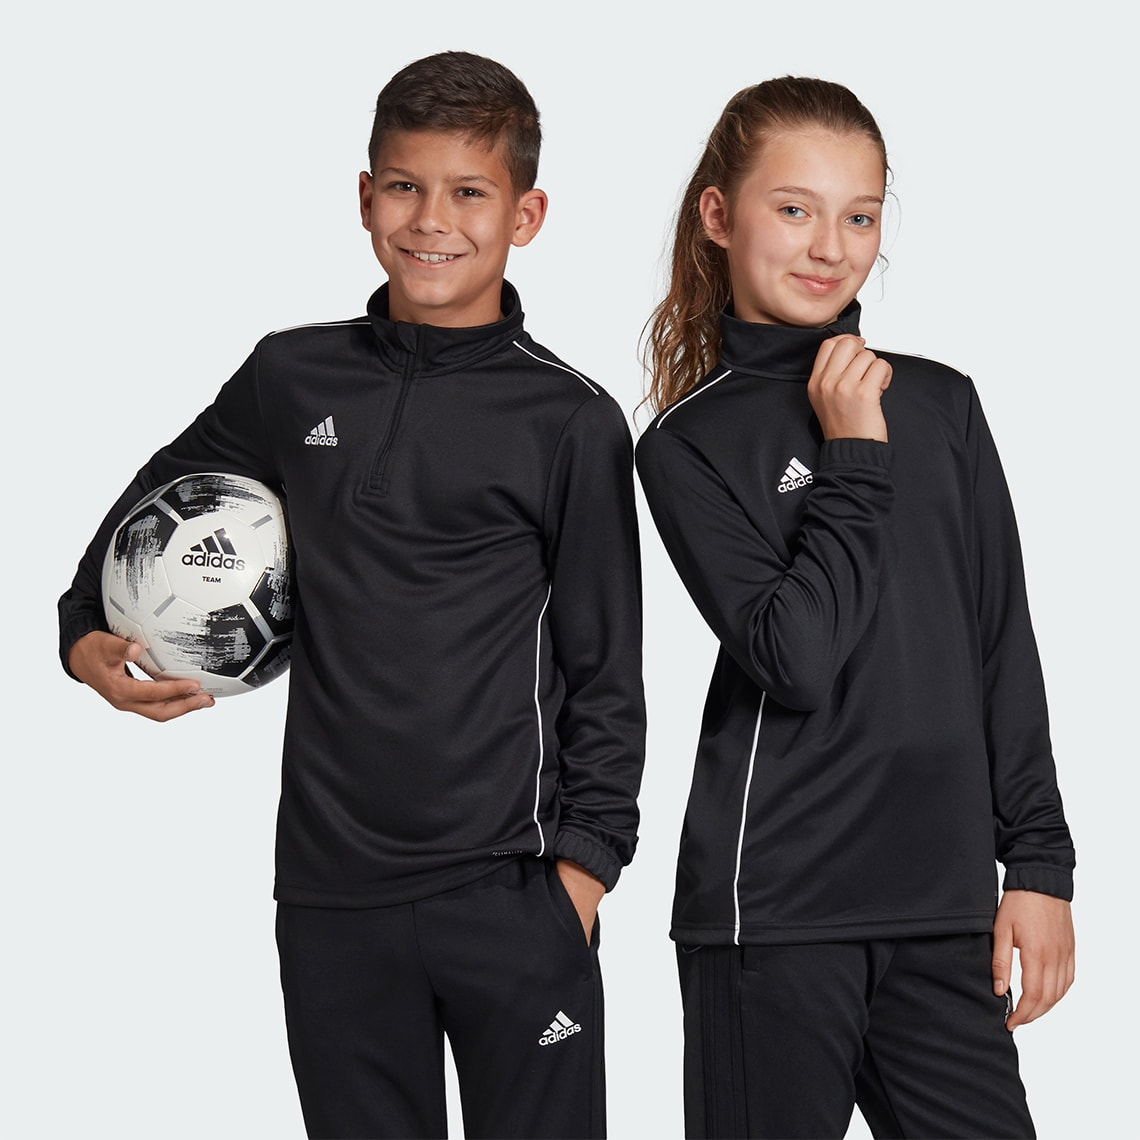 Football Kits and Clothing | adidas UK